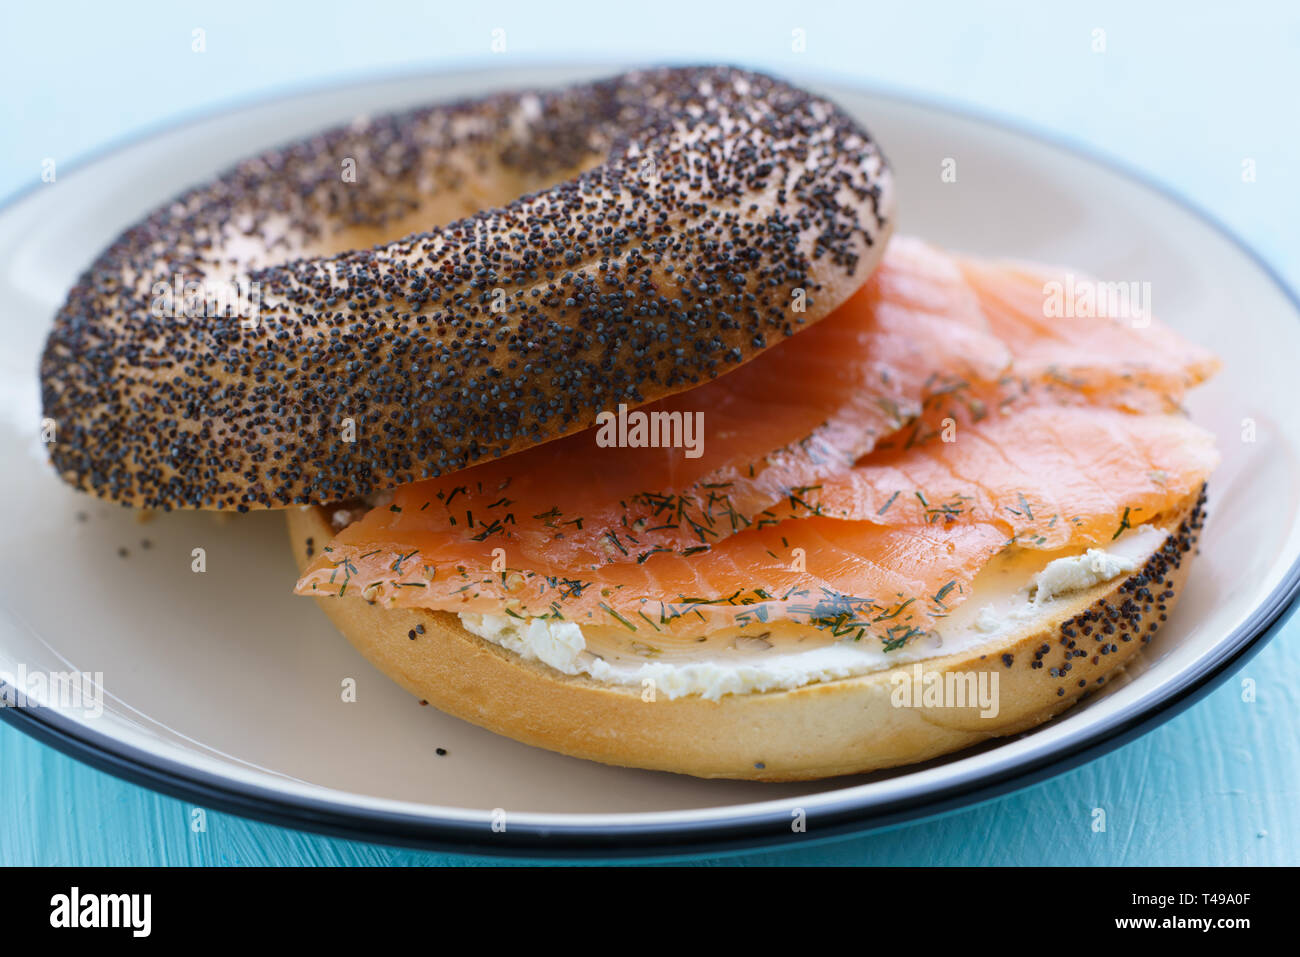 Poppy seeds bagel with cream cheese and smoked salmon served on a